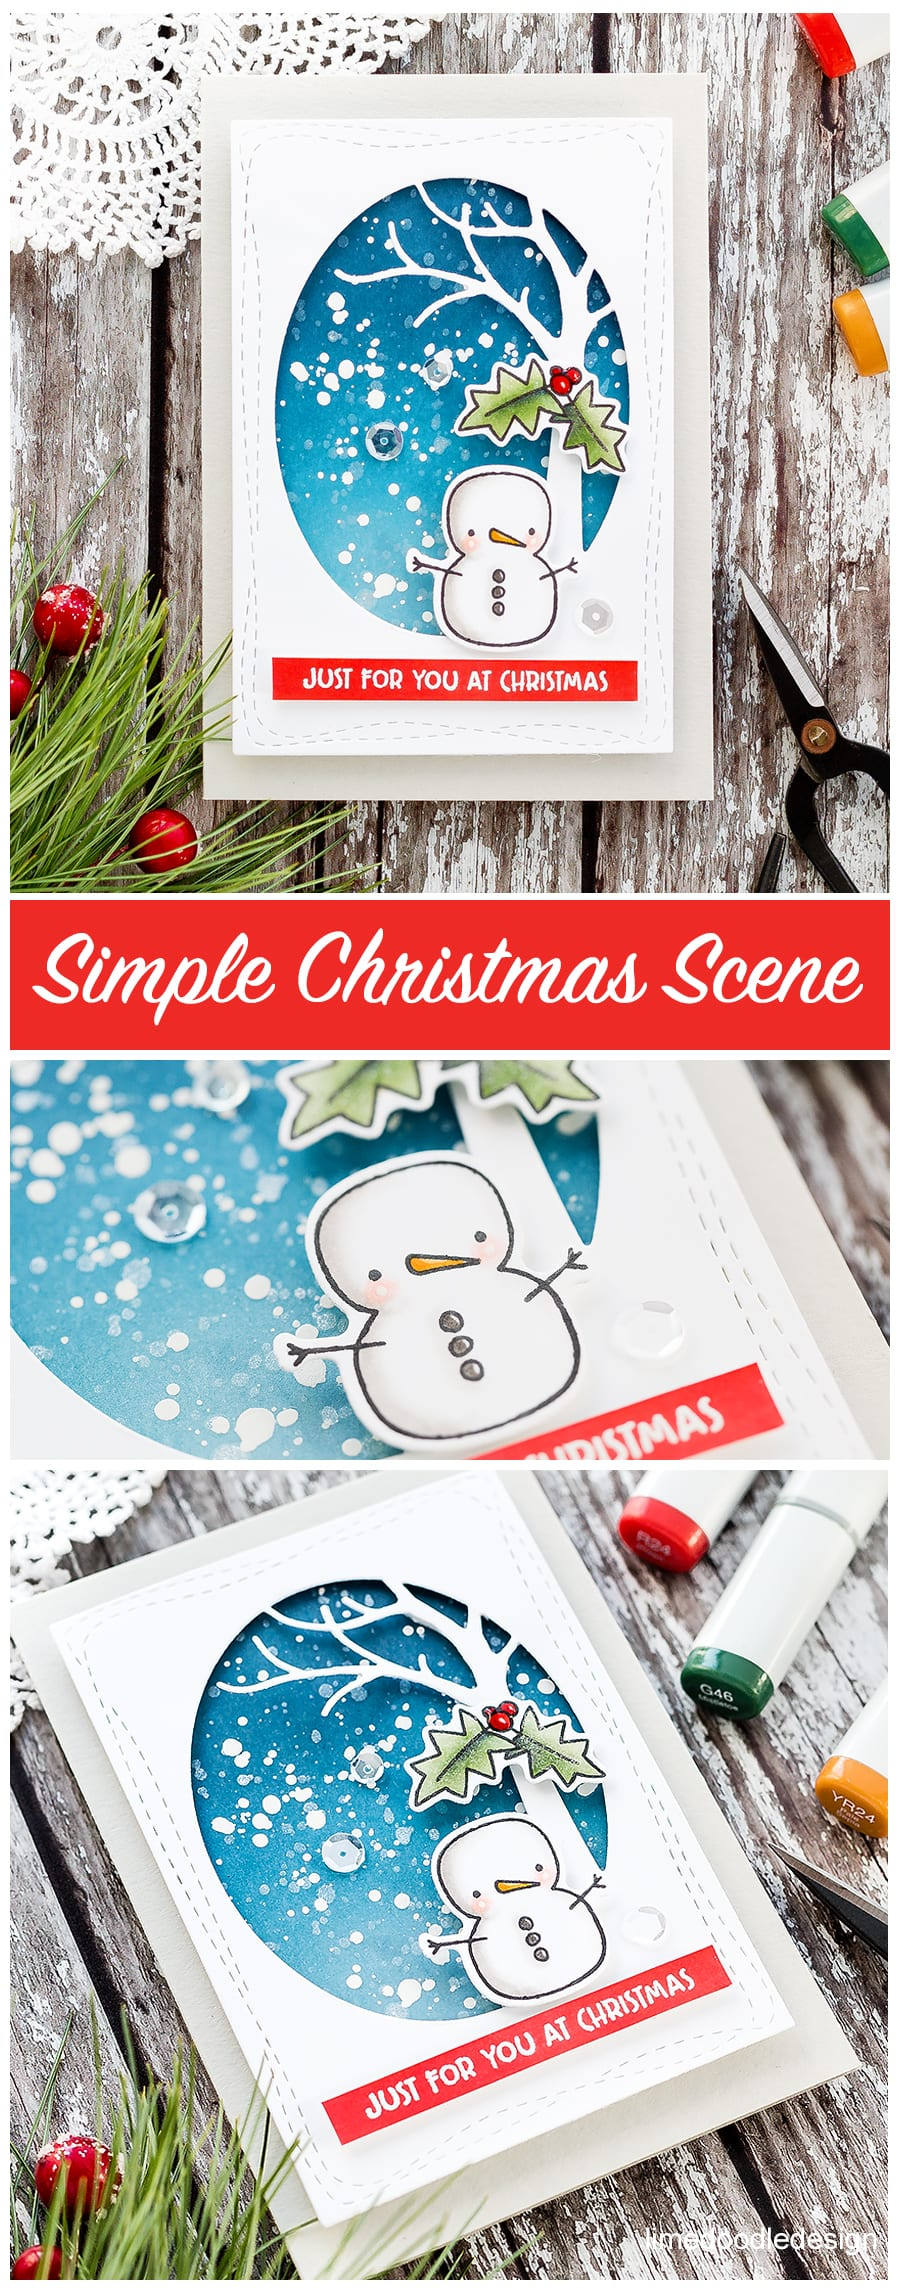 Quick and easy winter scene for this cute Christmas card by Debby Hughes using the Merry & Bright set from Simon Says Stamp. Find out more about this handmade card here: http://limedoodledesign.com/2017/11/video-quick-easy-winter-scene/